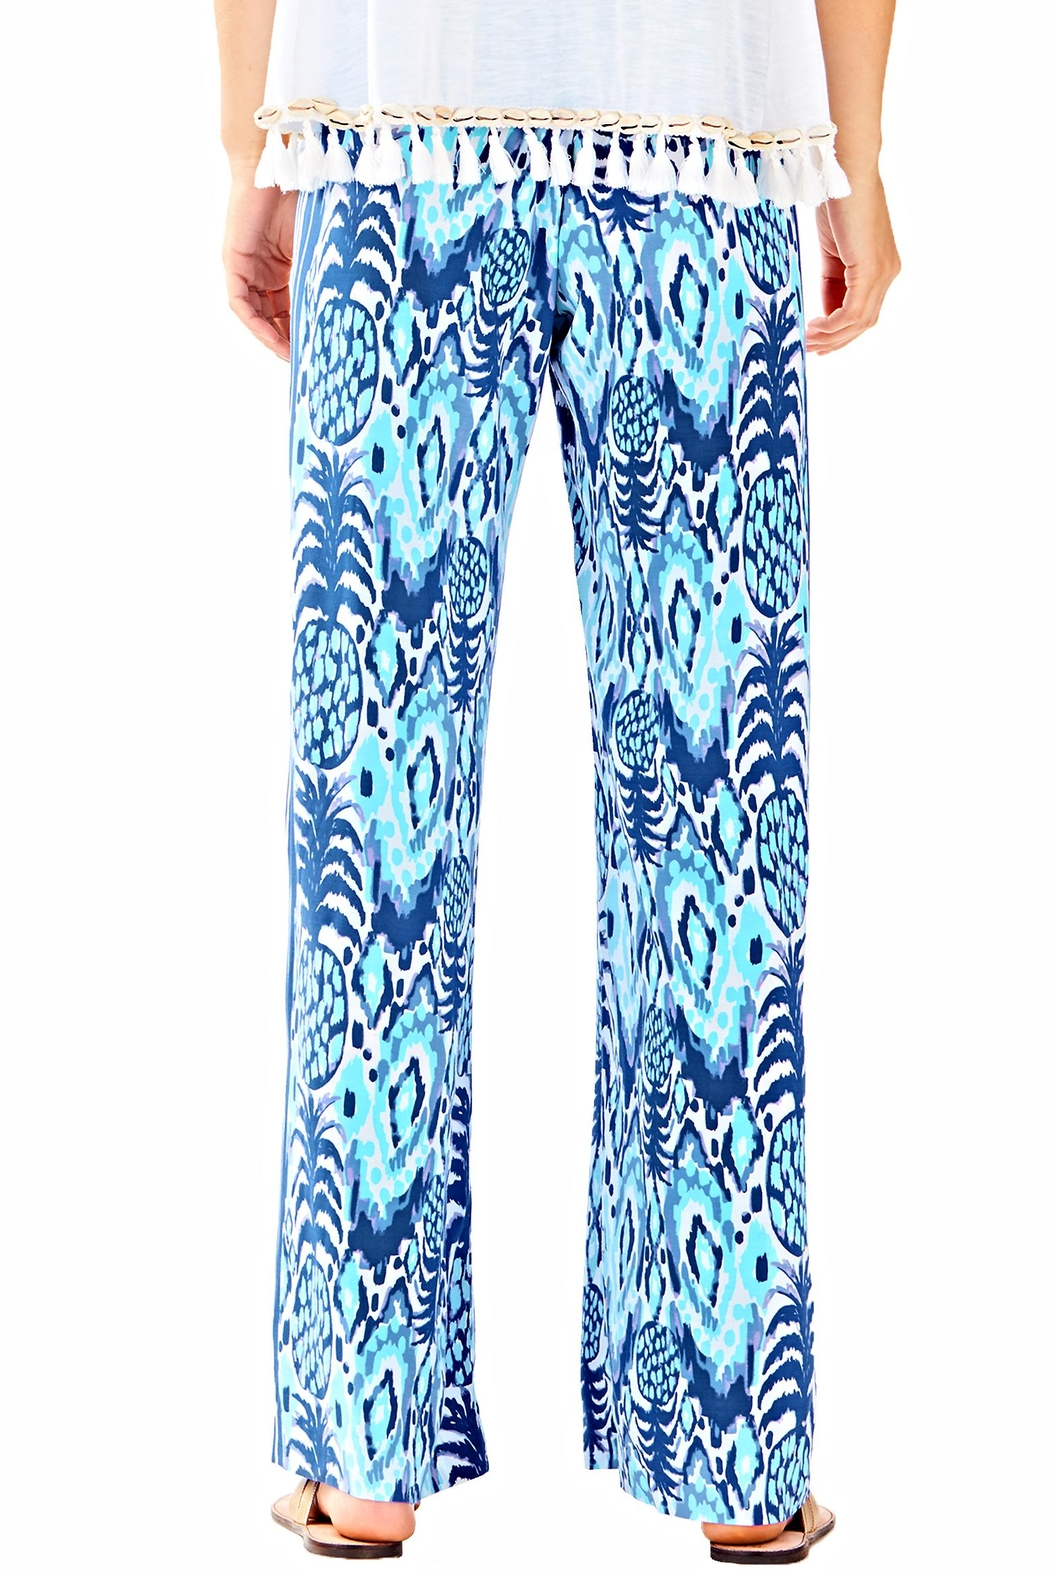 Lilly Pulitzer Balharbour Palazzo Pant - Side Cropped Image